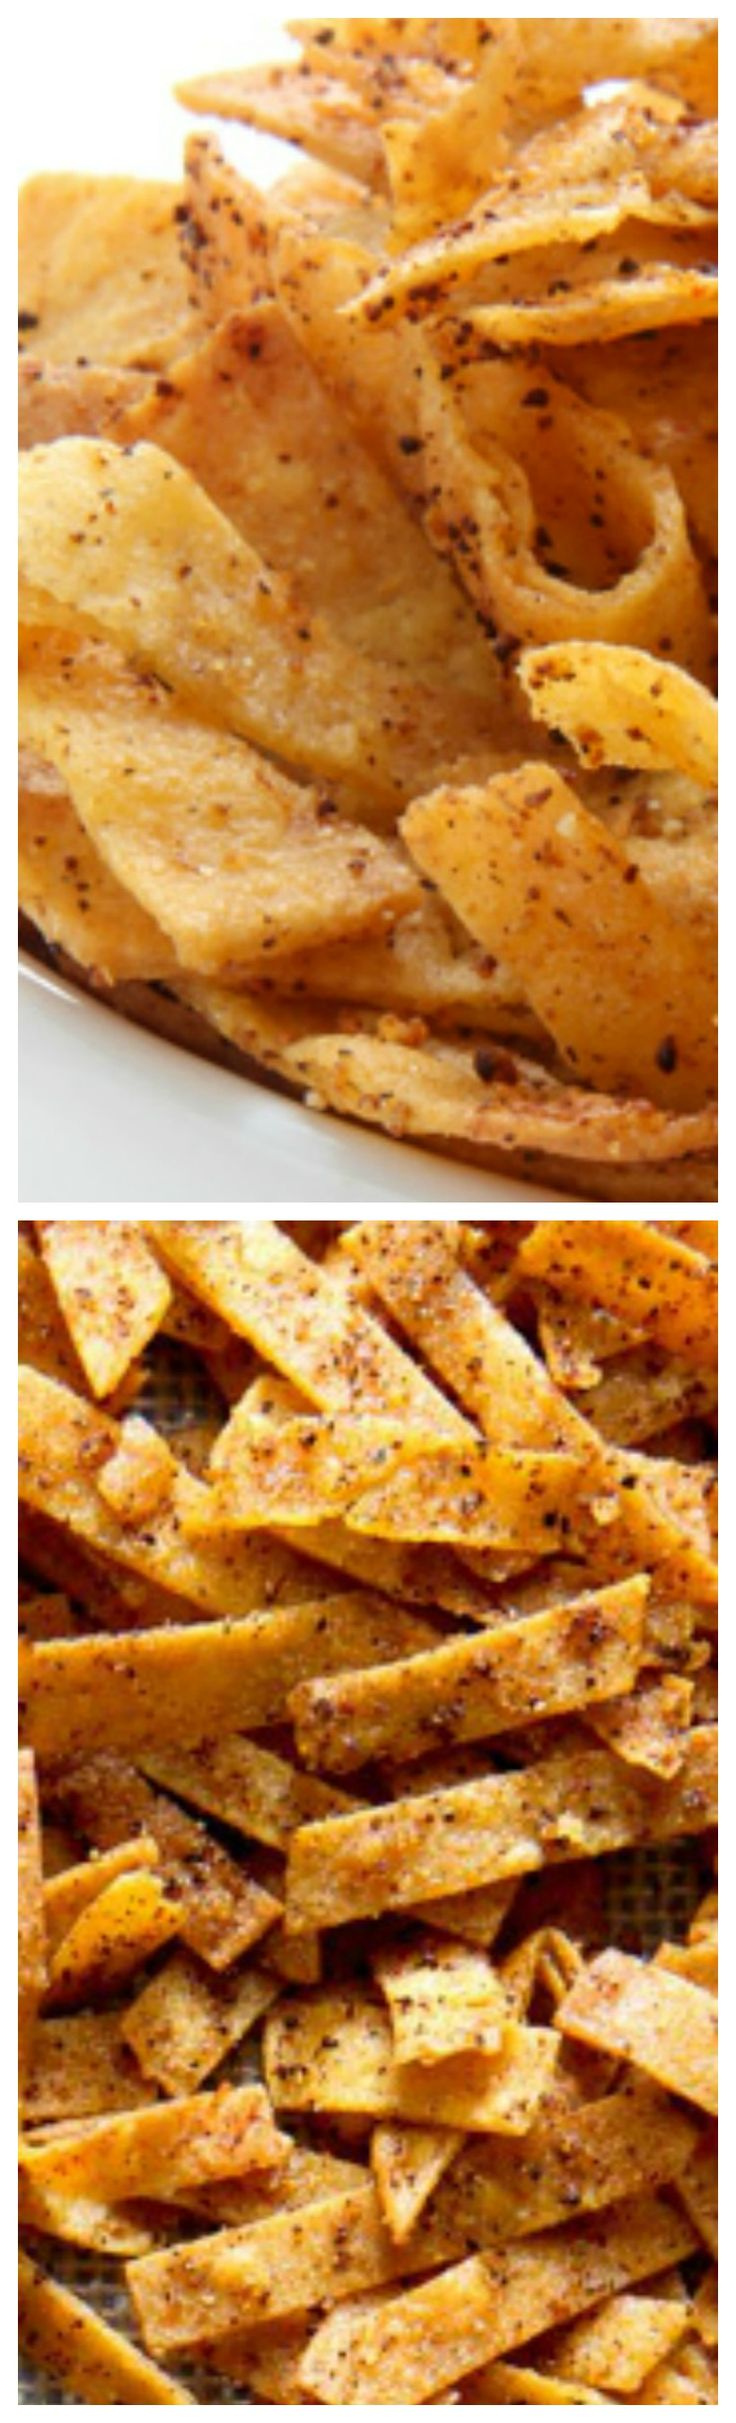 Seasoned Baked Tortilla Strips ~ Crunchy homemade seasoned and baked tortilla strips recipe... A perfect topping for salads, soup and more!